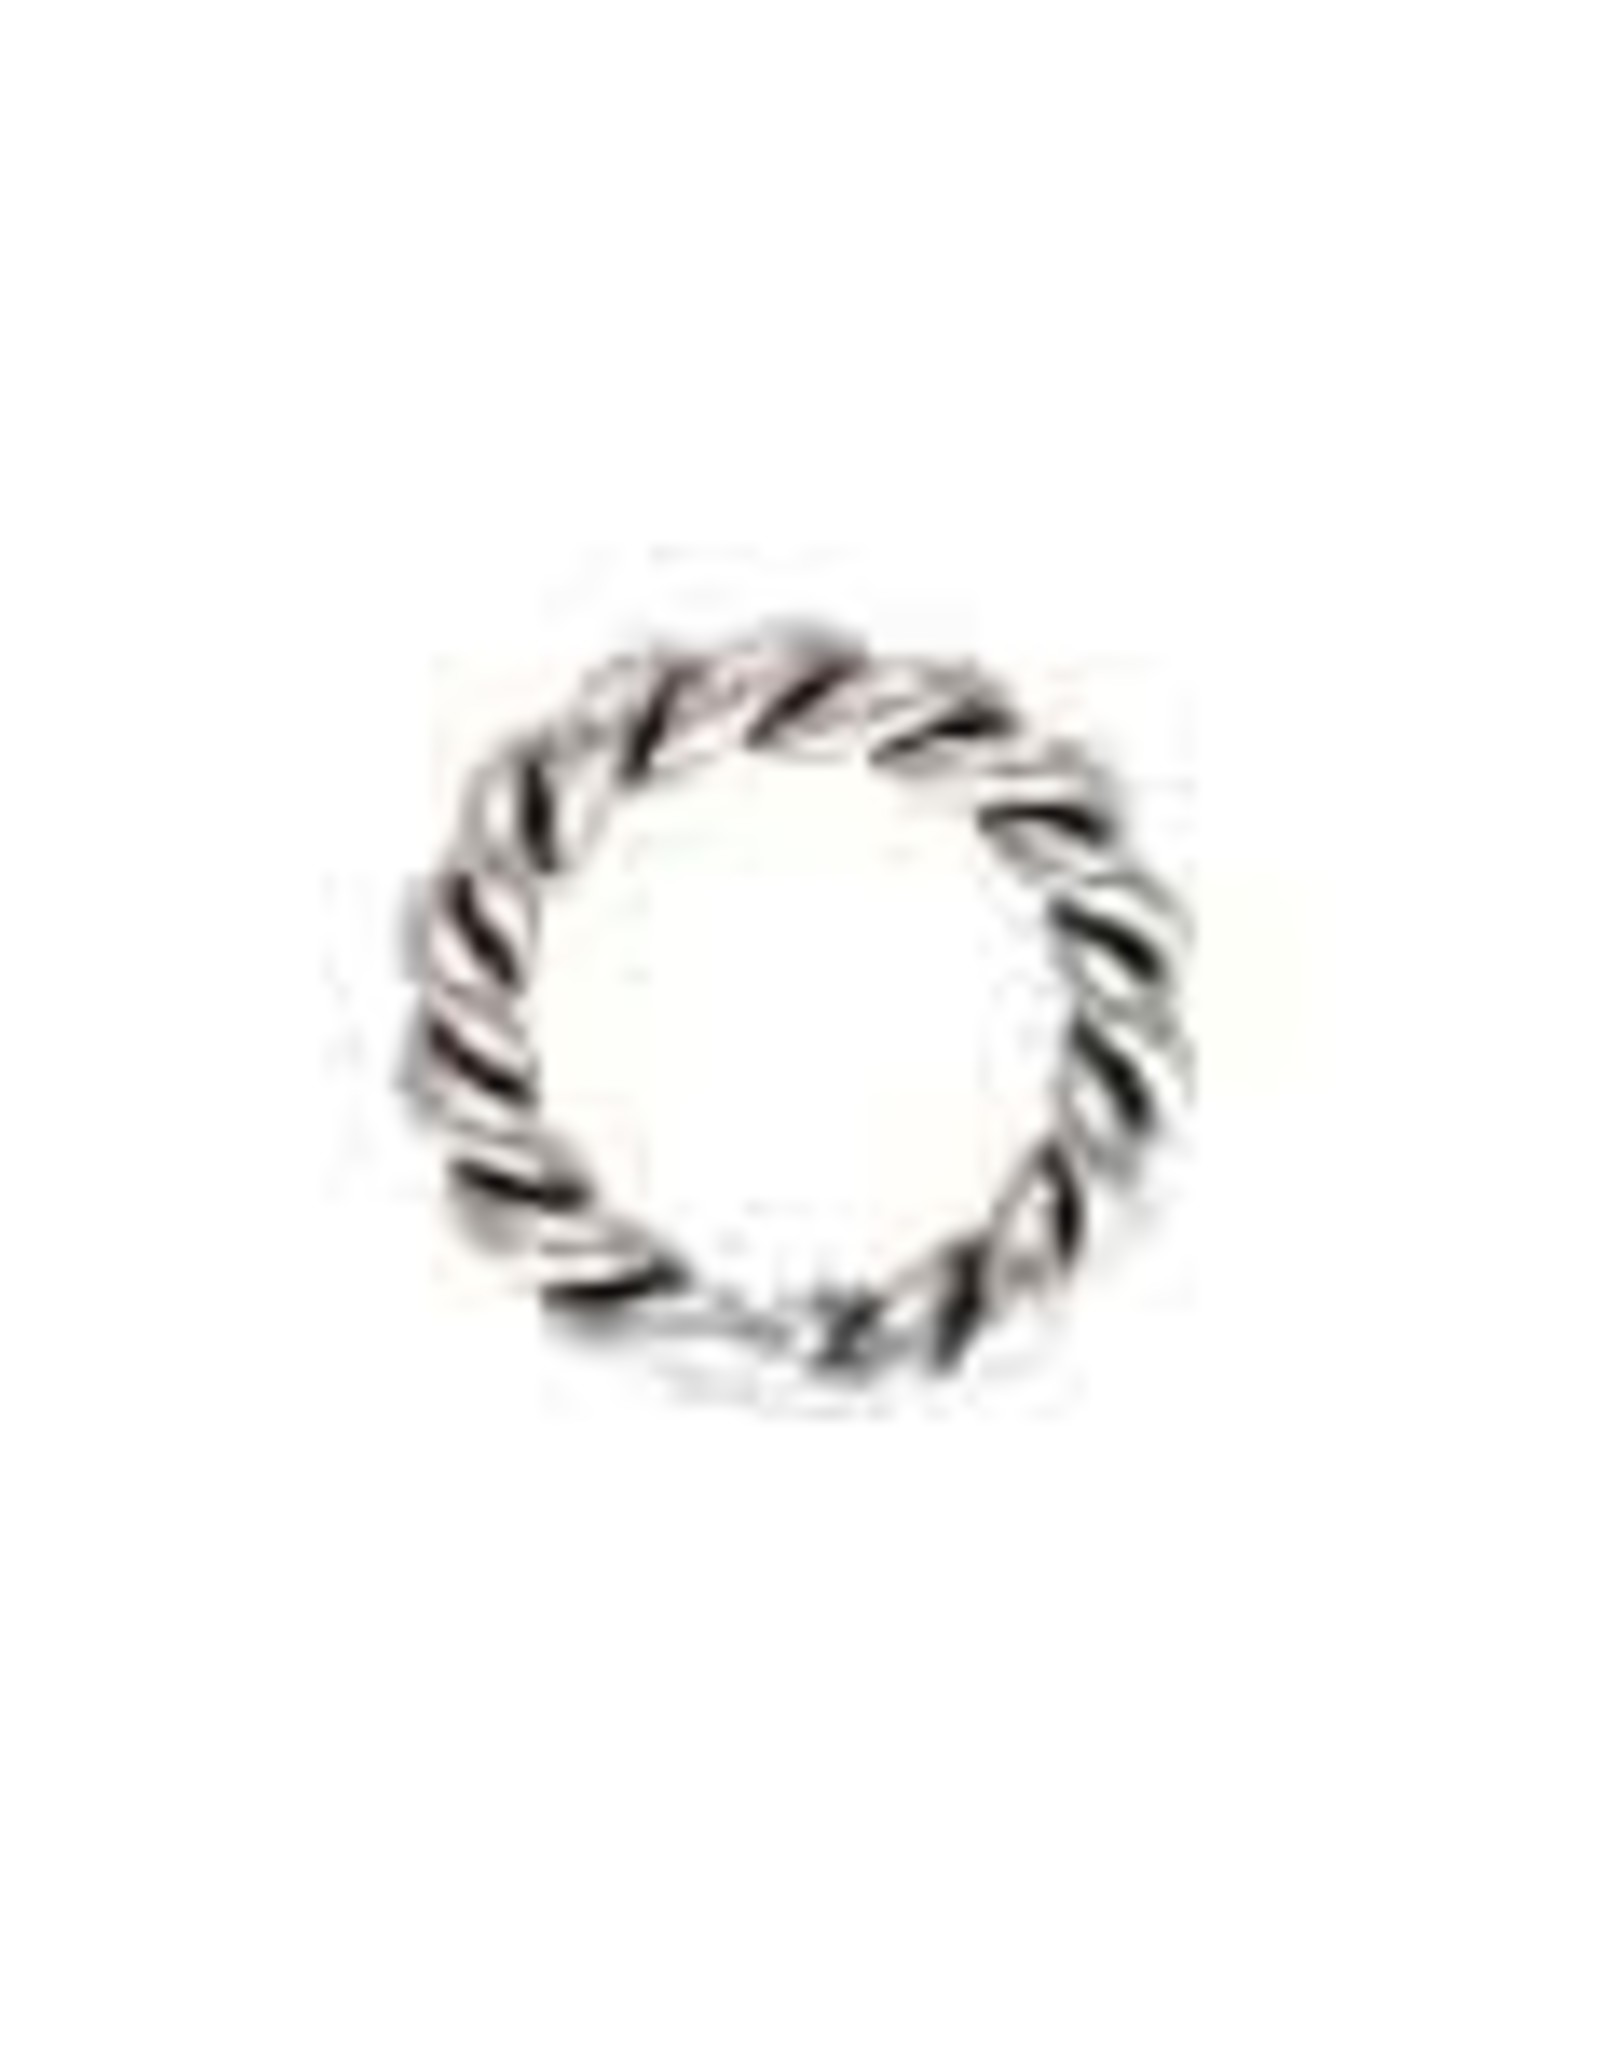 4mm Twst Closed Ring Sterling Silver Qty 12